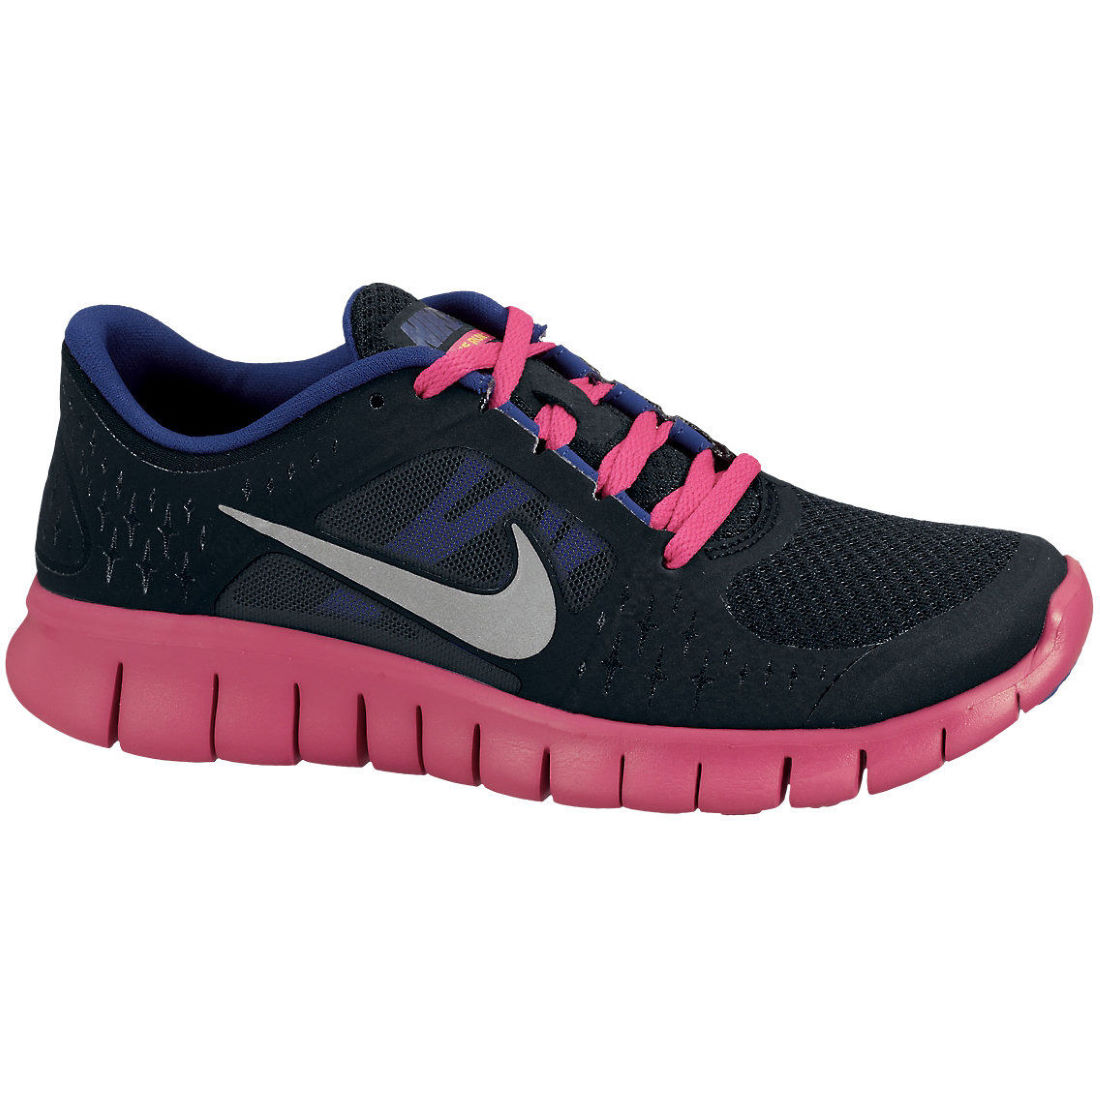 wiggle nike kids free run 3 gs shoes aw12 fitness shoes. Black Bedroom Furniture Sets. Home Design Ideas